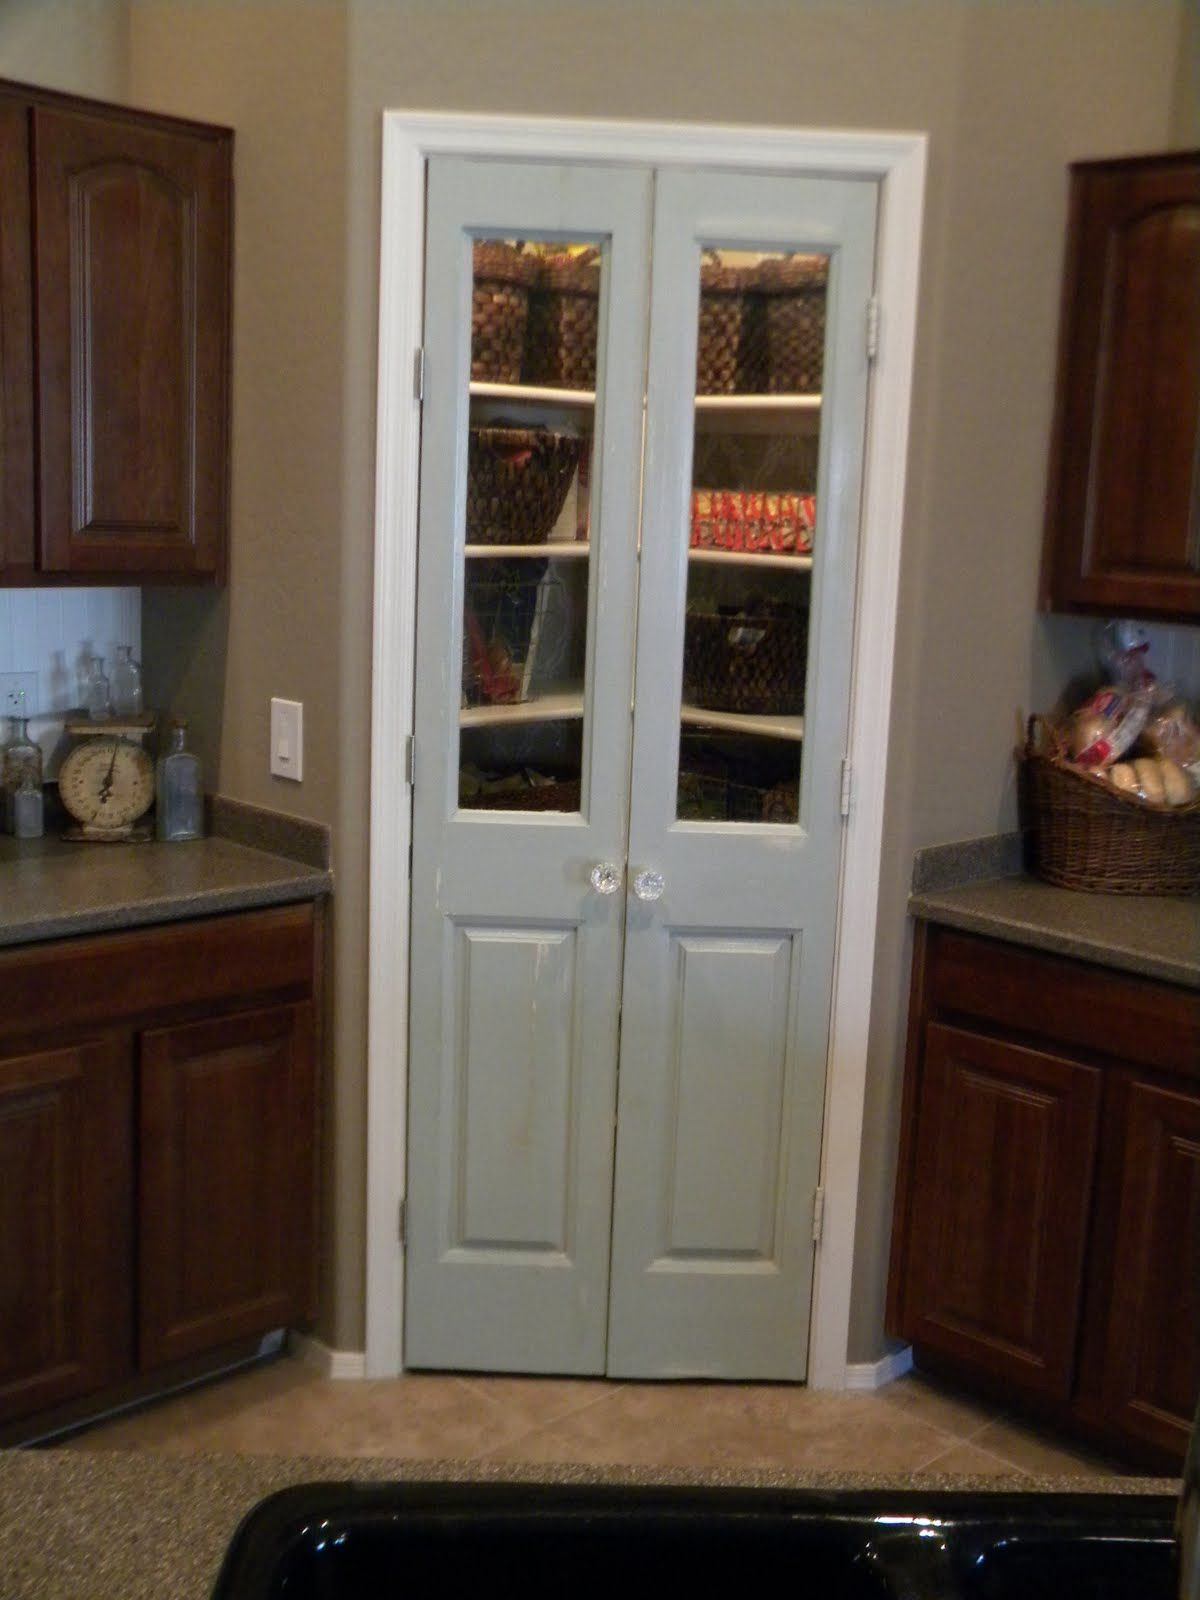 antique pantry doors - Antique Pantry Doors Kitchen Pinterest Pantry, Doors And